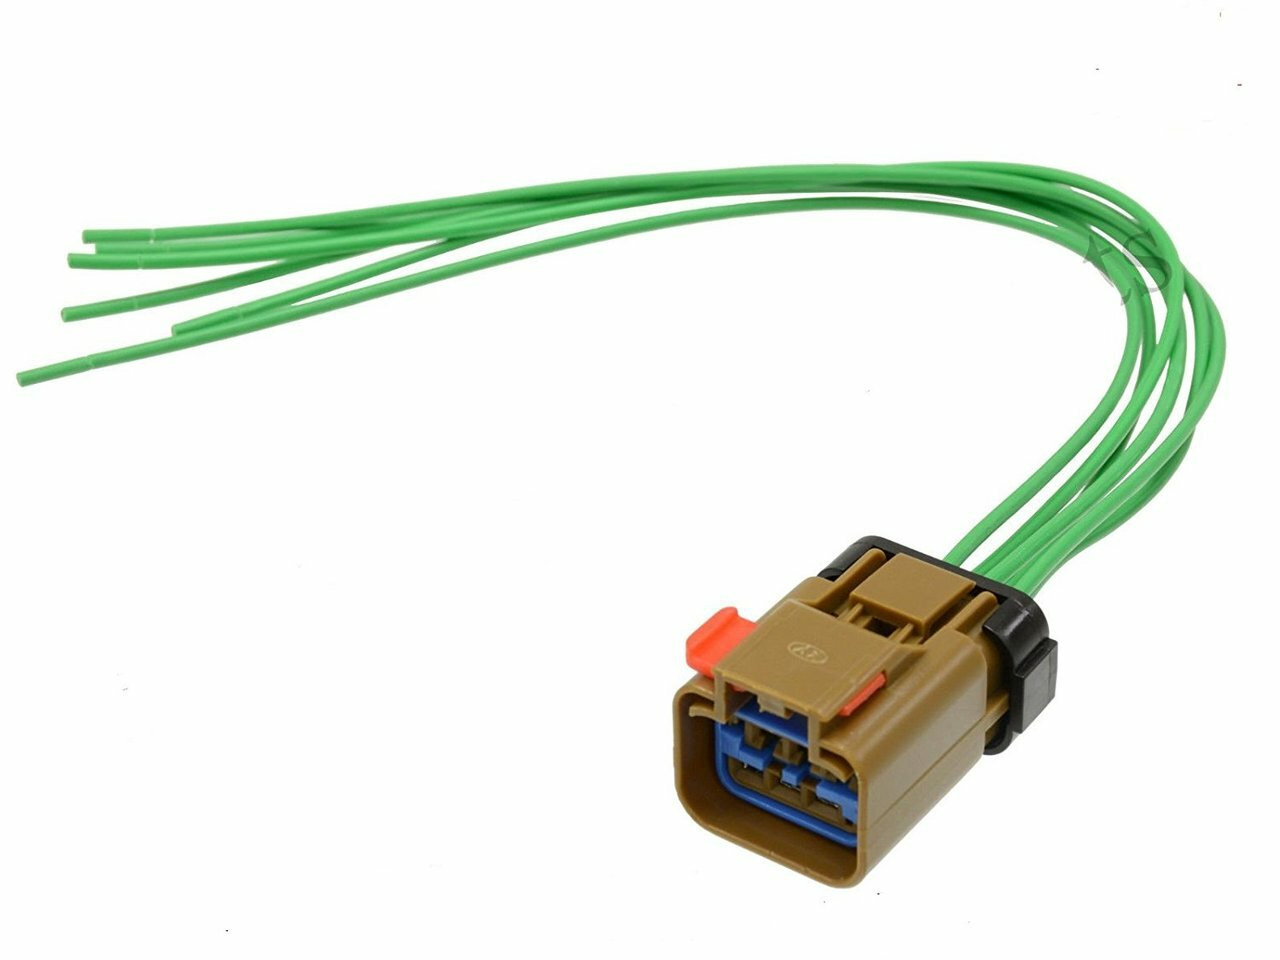 wiring harness connector kit best secret wiring diagram Auto Wire Harness Repair wiring harness pigtail connector kit repairs or replaces power rh michiganmotorsports electrical wiring harness connectors auto wiring harness connector